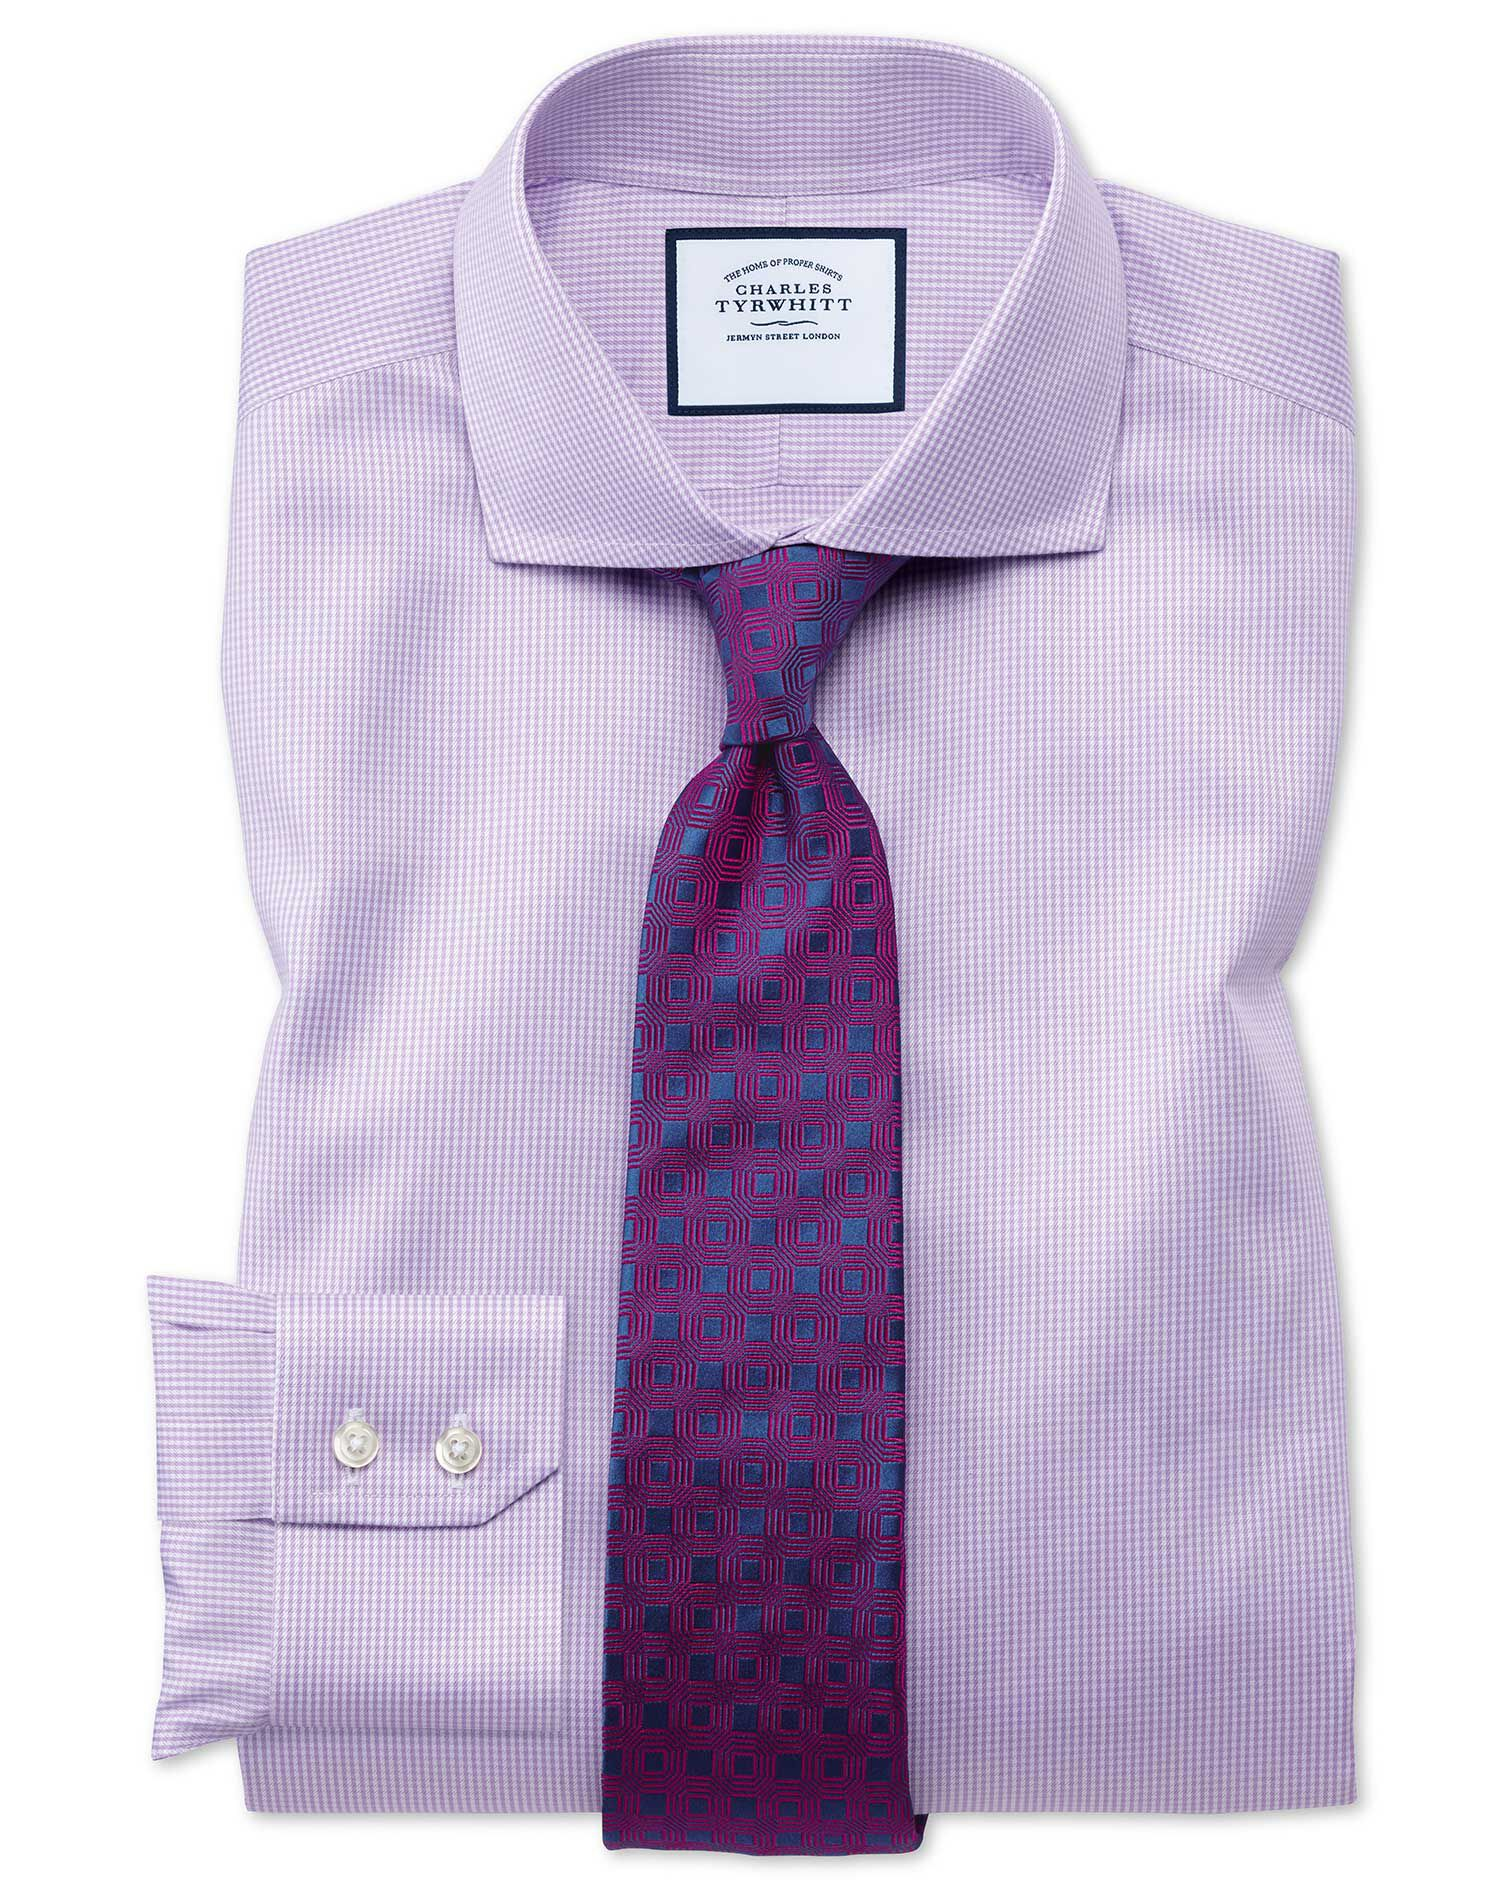 Extra Slim Fit Cutaway Non-Iron Puppytooth Lilac Cotton Formal Shirt Double Cuff Size 15.5/35 by Cha